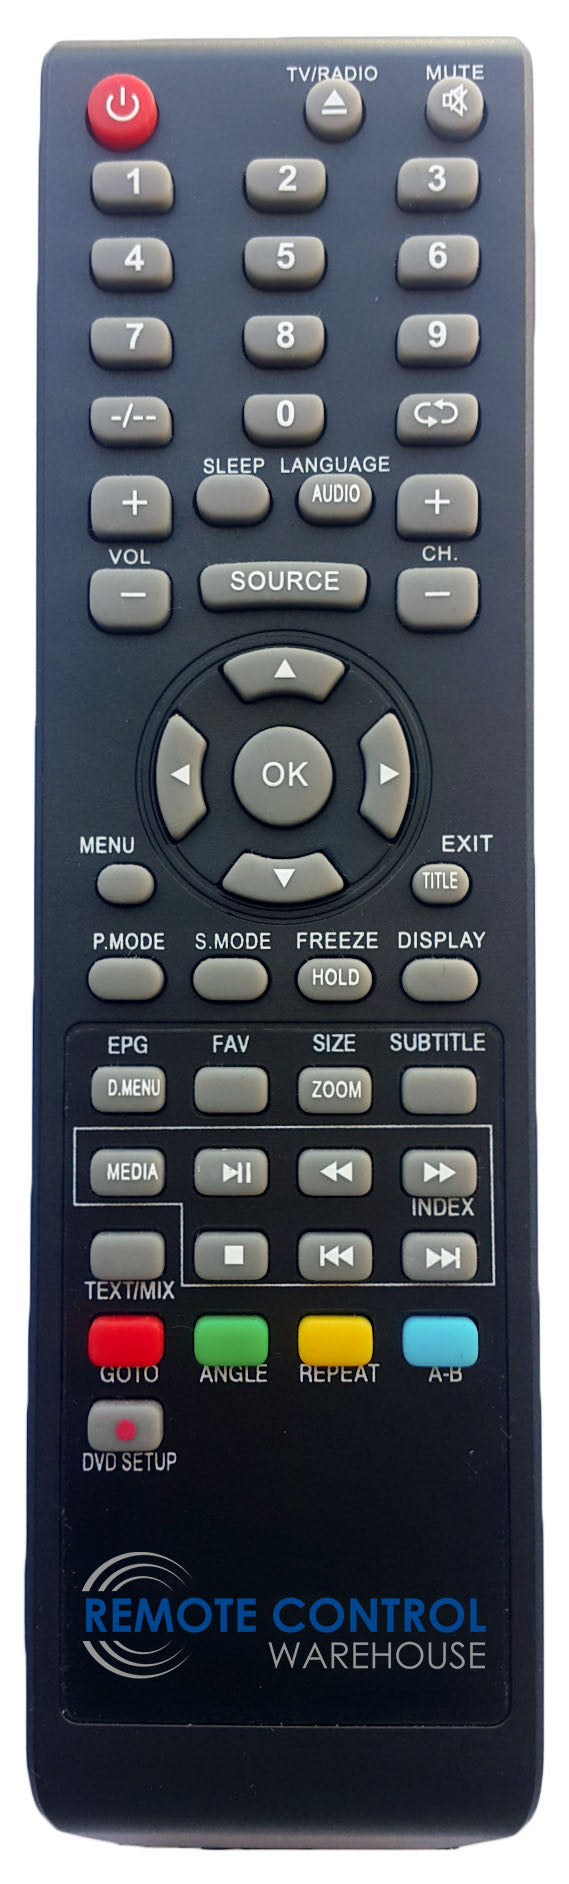 REPLACEMENT VIVID REMOTE CONTROL - AT-40HDC1 AT40HDC1 LCD TV - Remote Control Warehouse